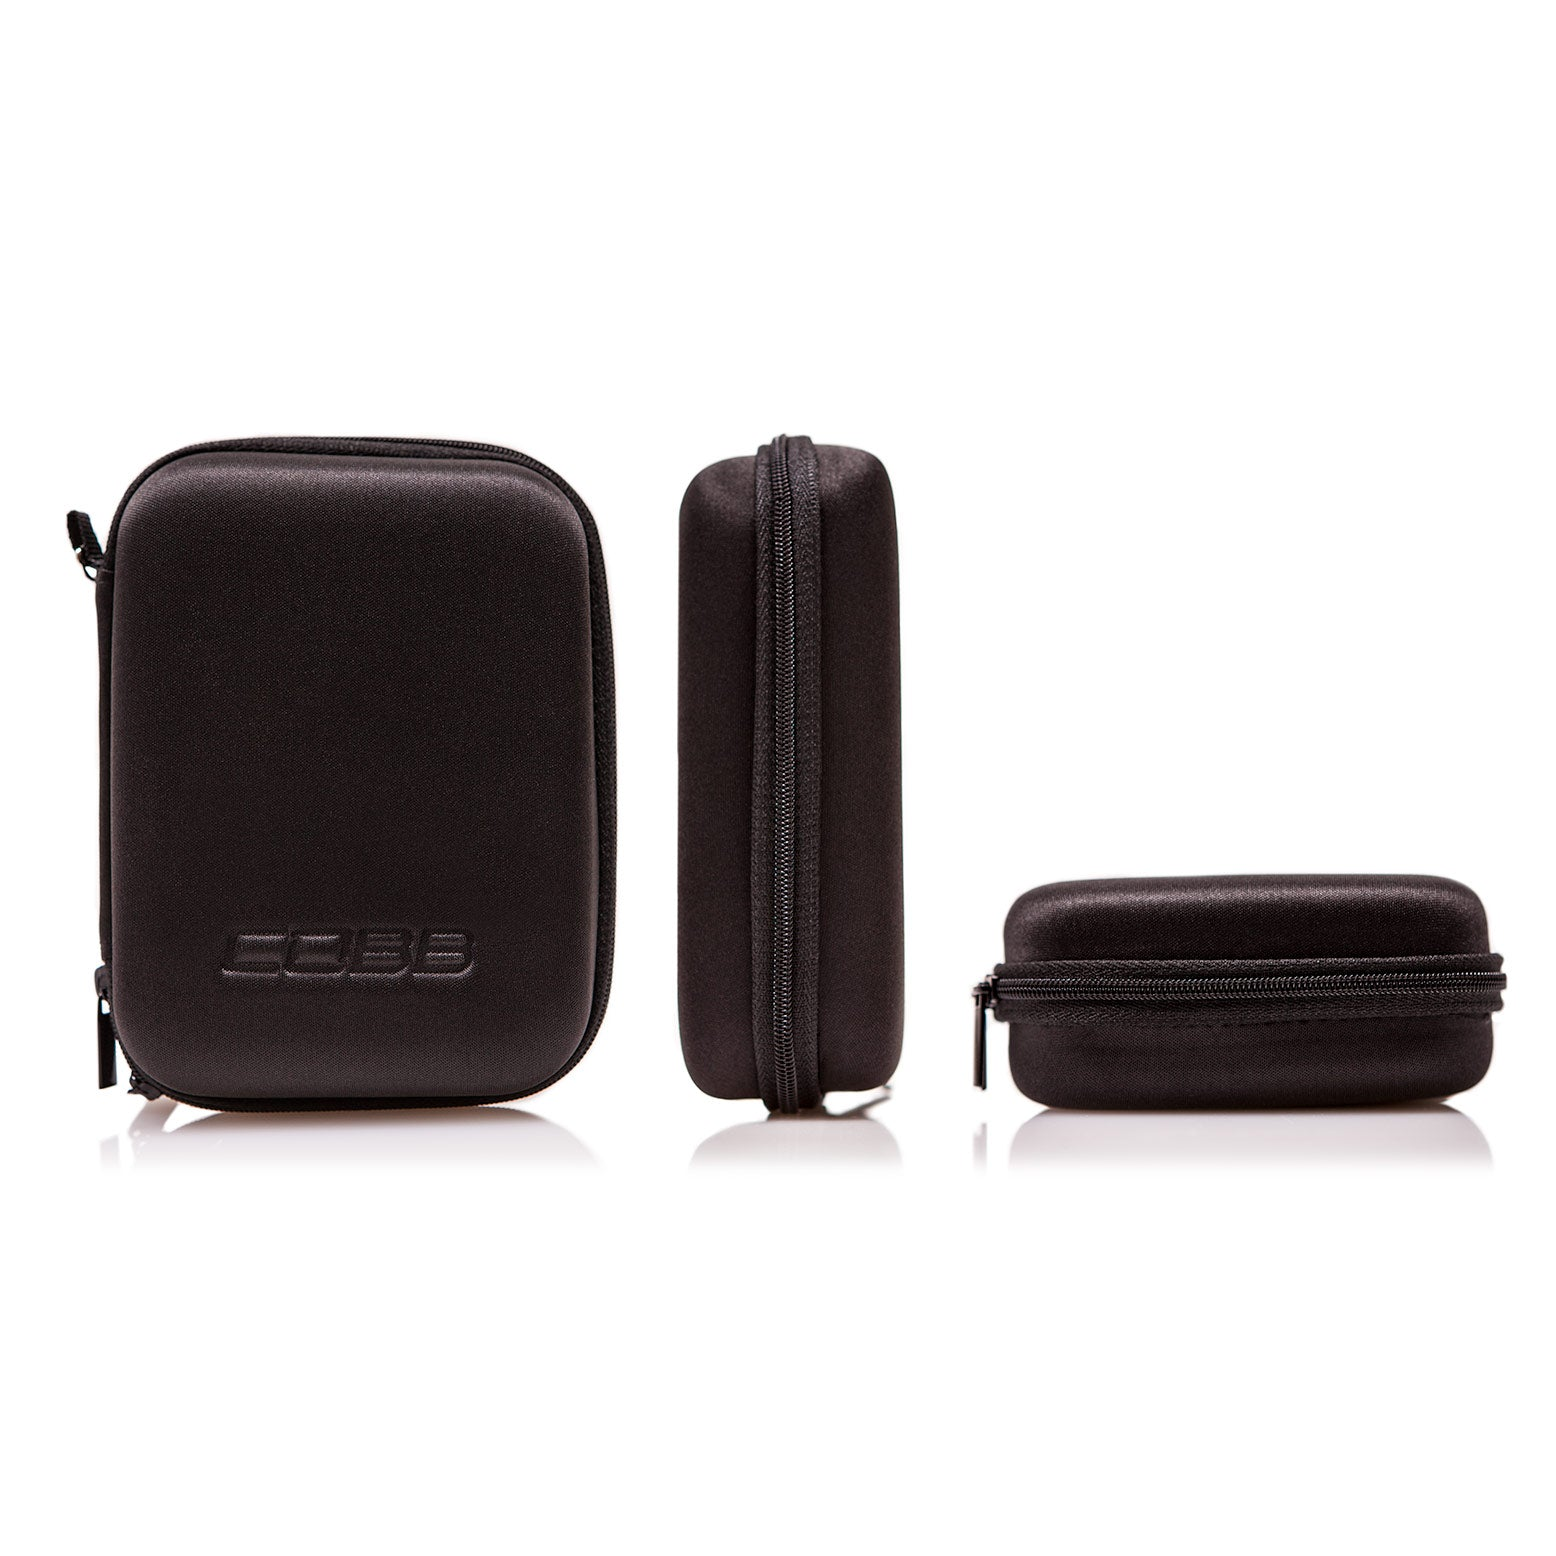 Accessport V3 Zippercase